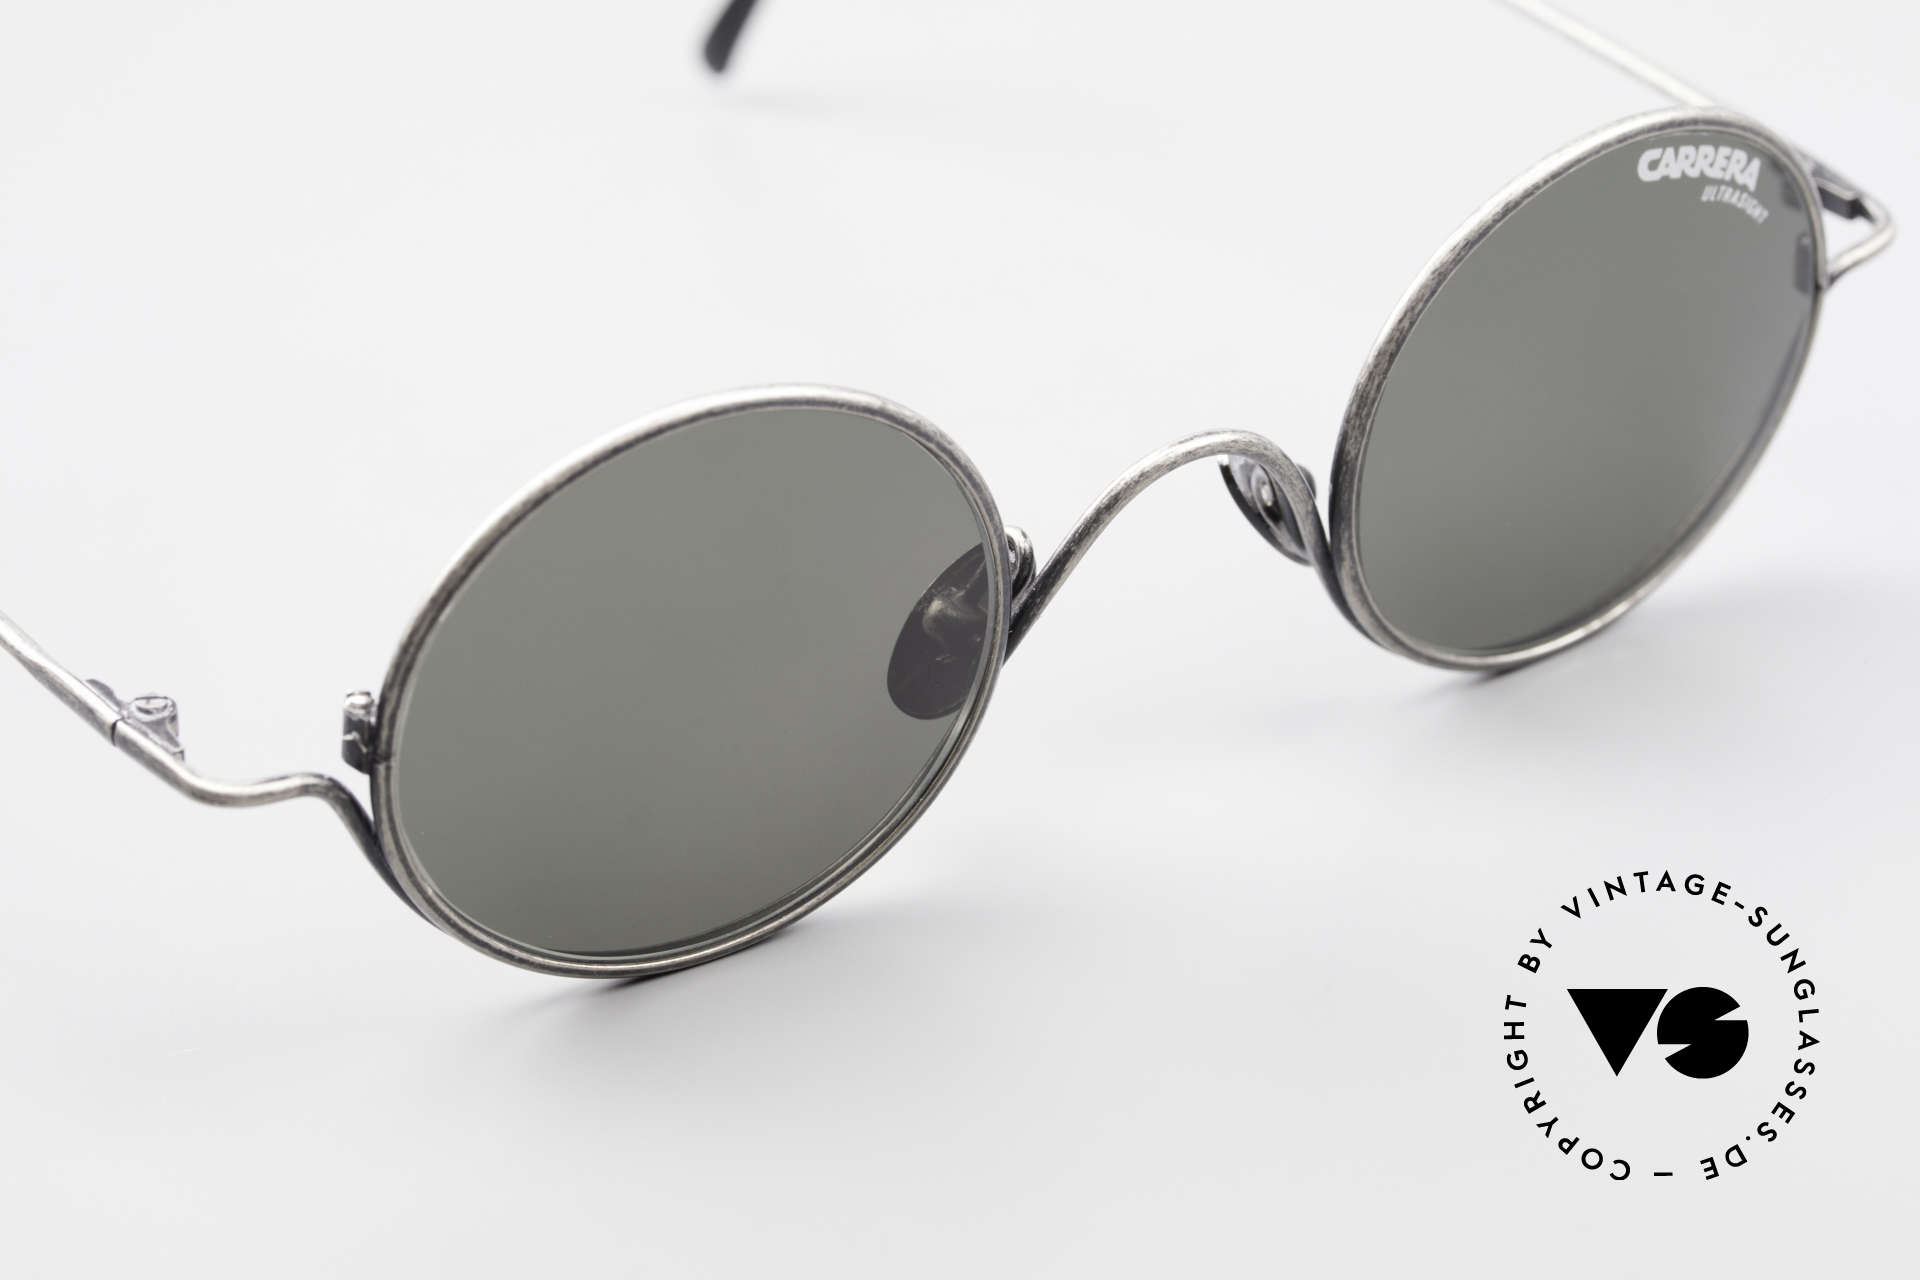 Carrera 5790 Small Round Vintage Glasses, new old stock (like all our classic Carrera sunglasses), Made for Men and Women